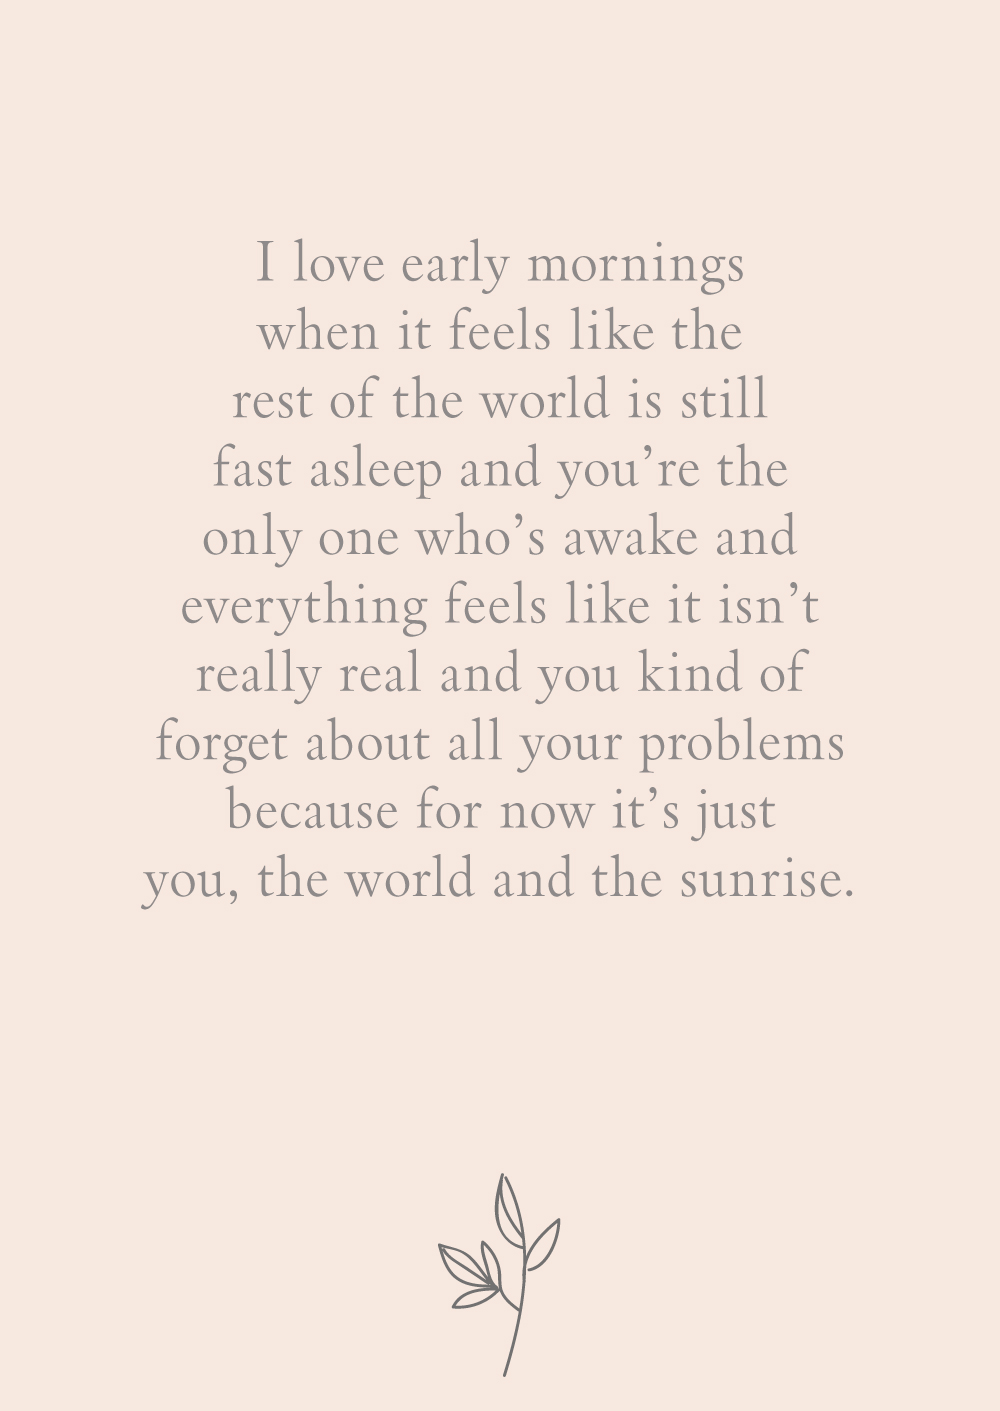 quote about why mornings are great